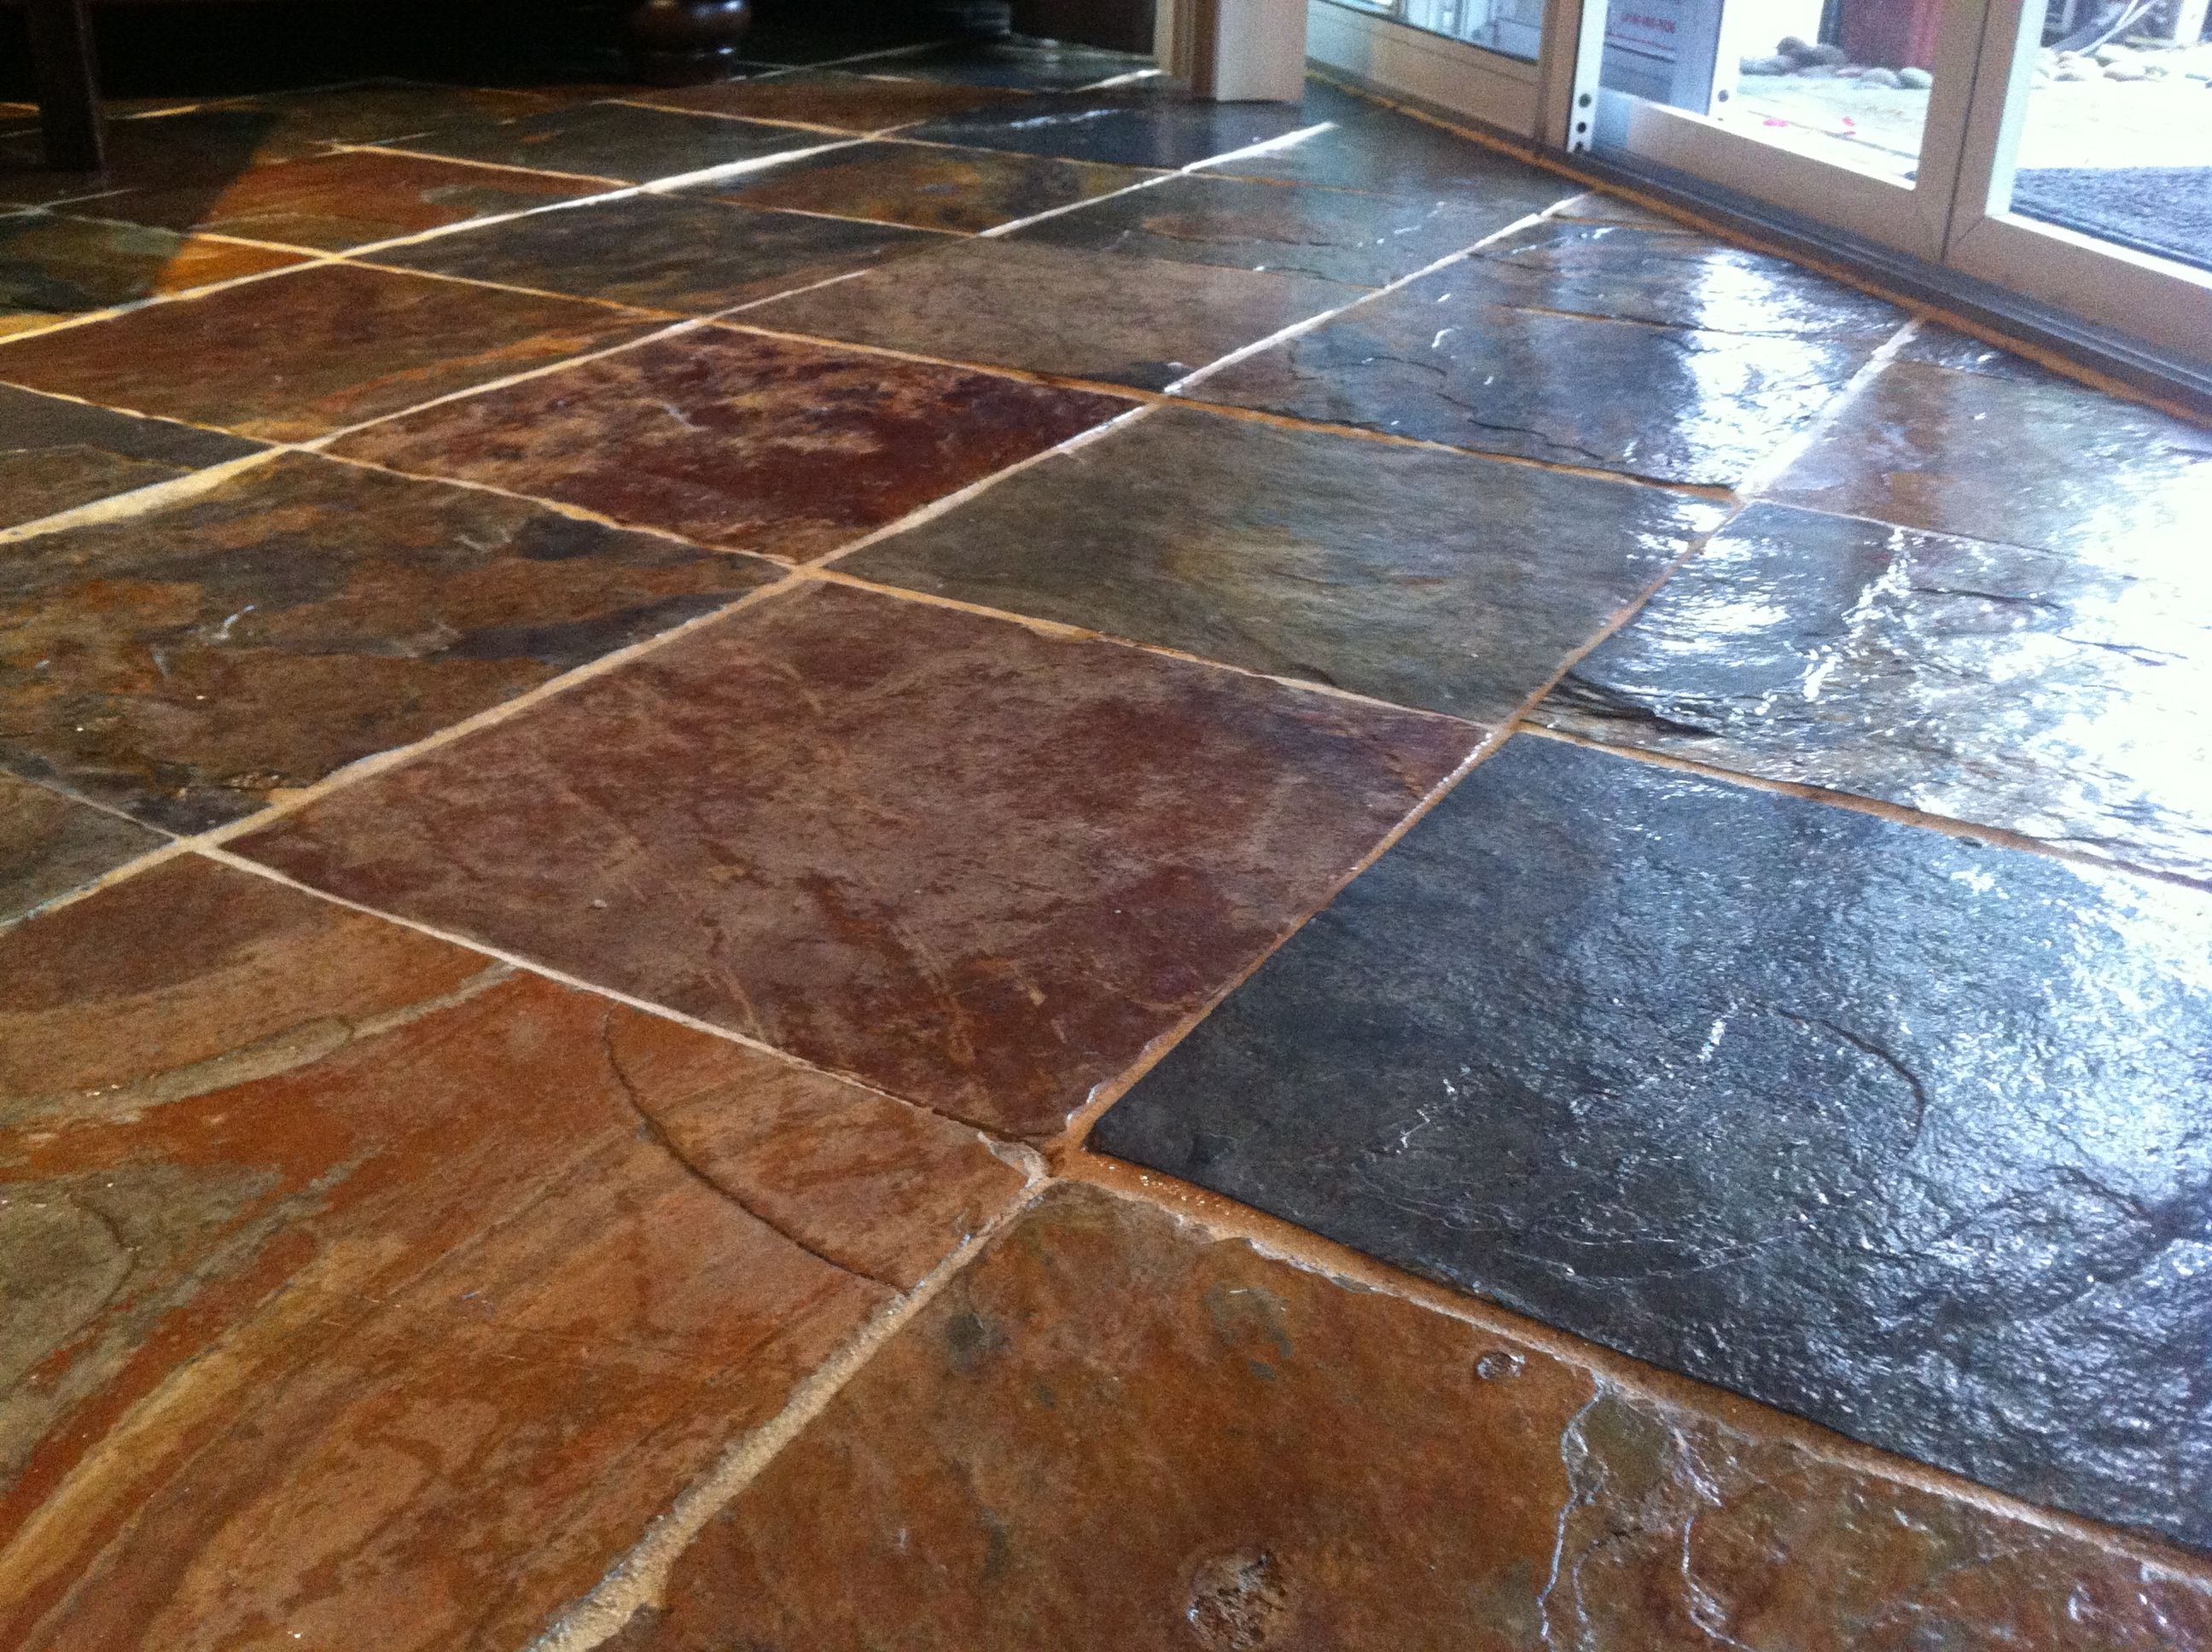 Kitchen flooring ideas pros cons and cost of each option kitchen flooring ideas pros cons and cost of each option doublecrazyfo Choice Image